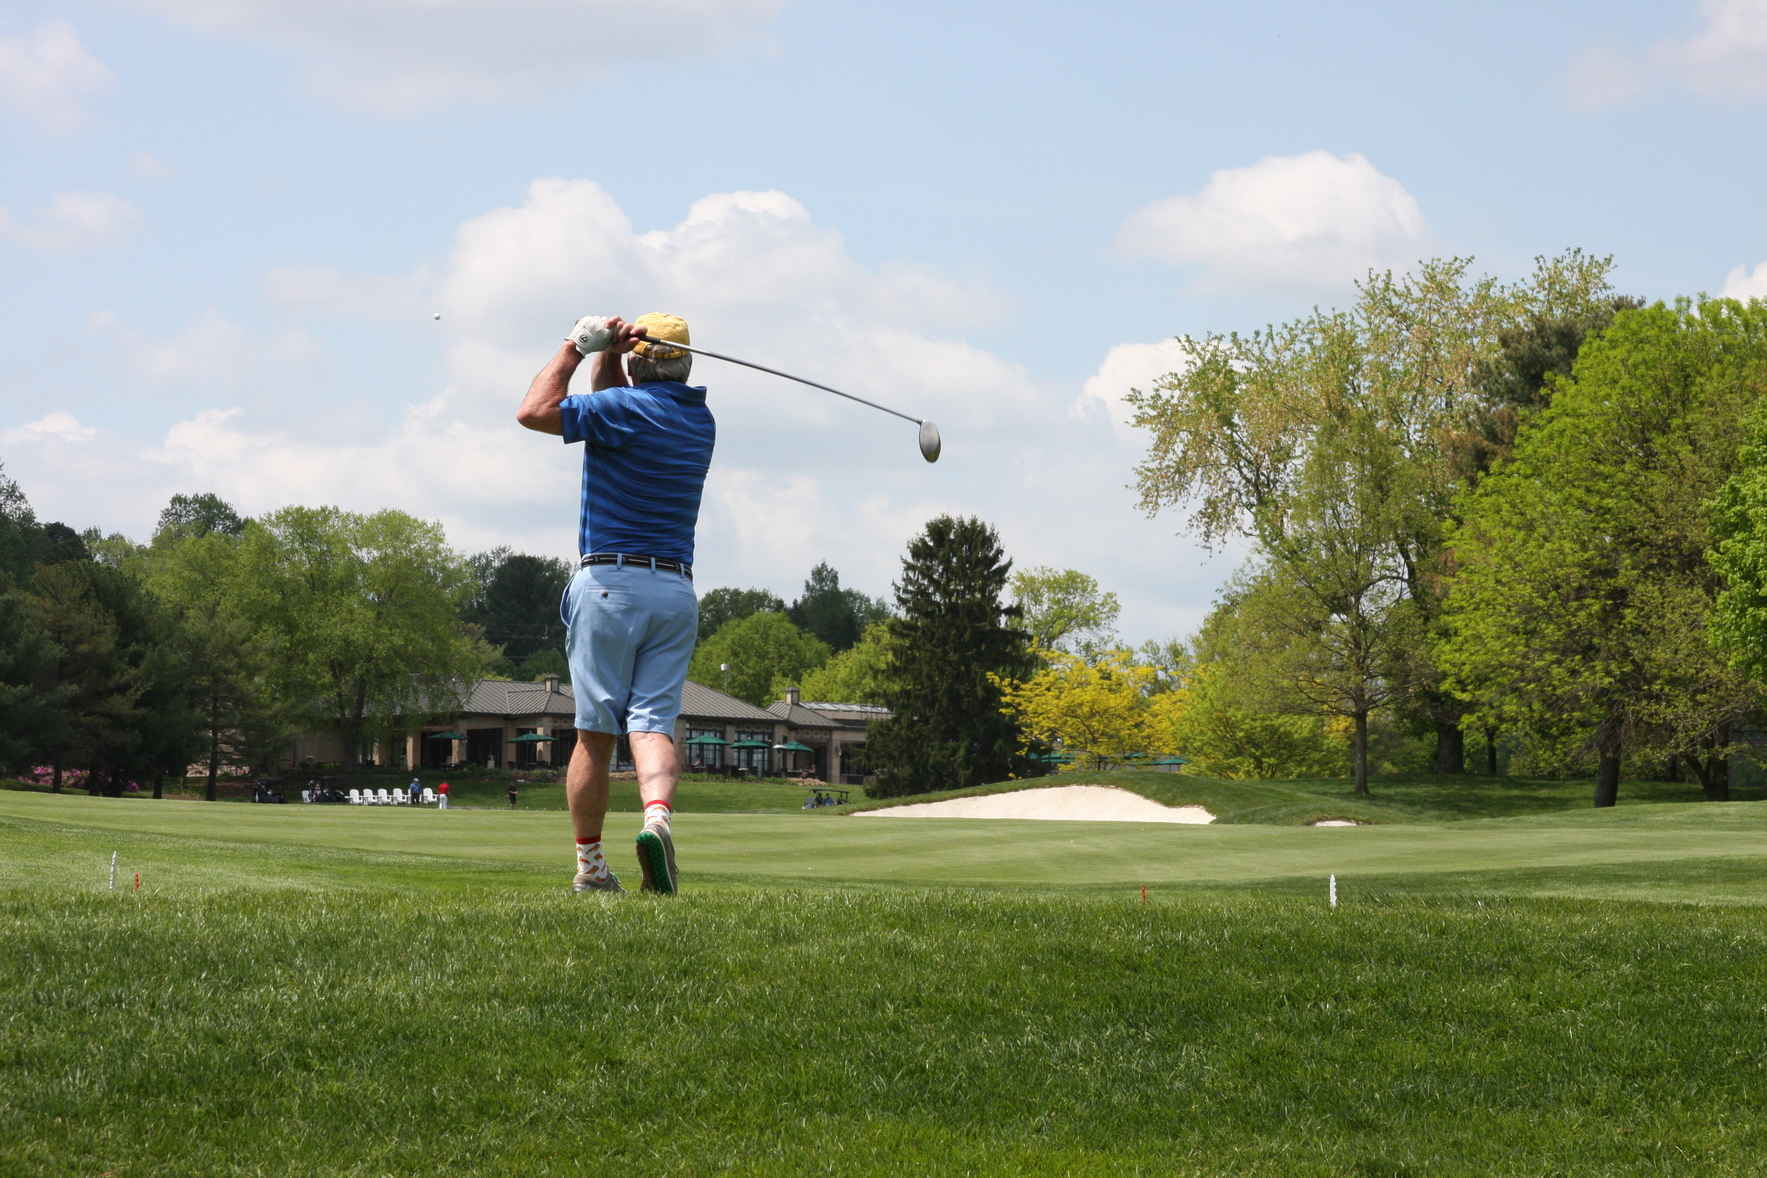 The 5th Annual Dick and Jody Memorial Golf Tournament image